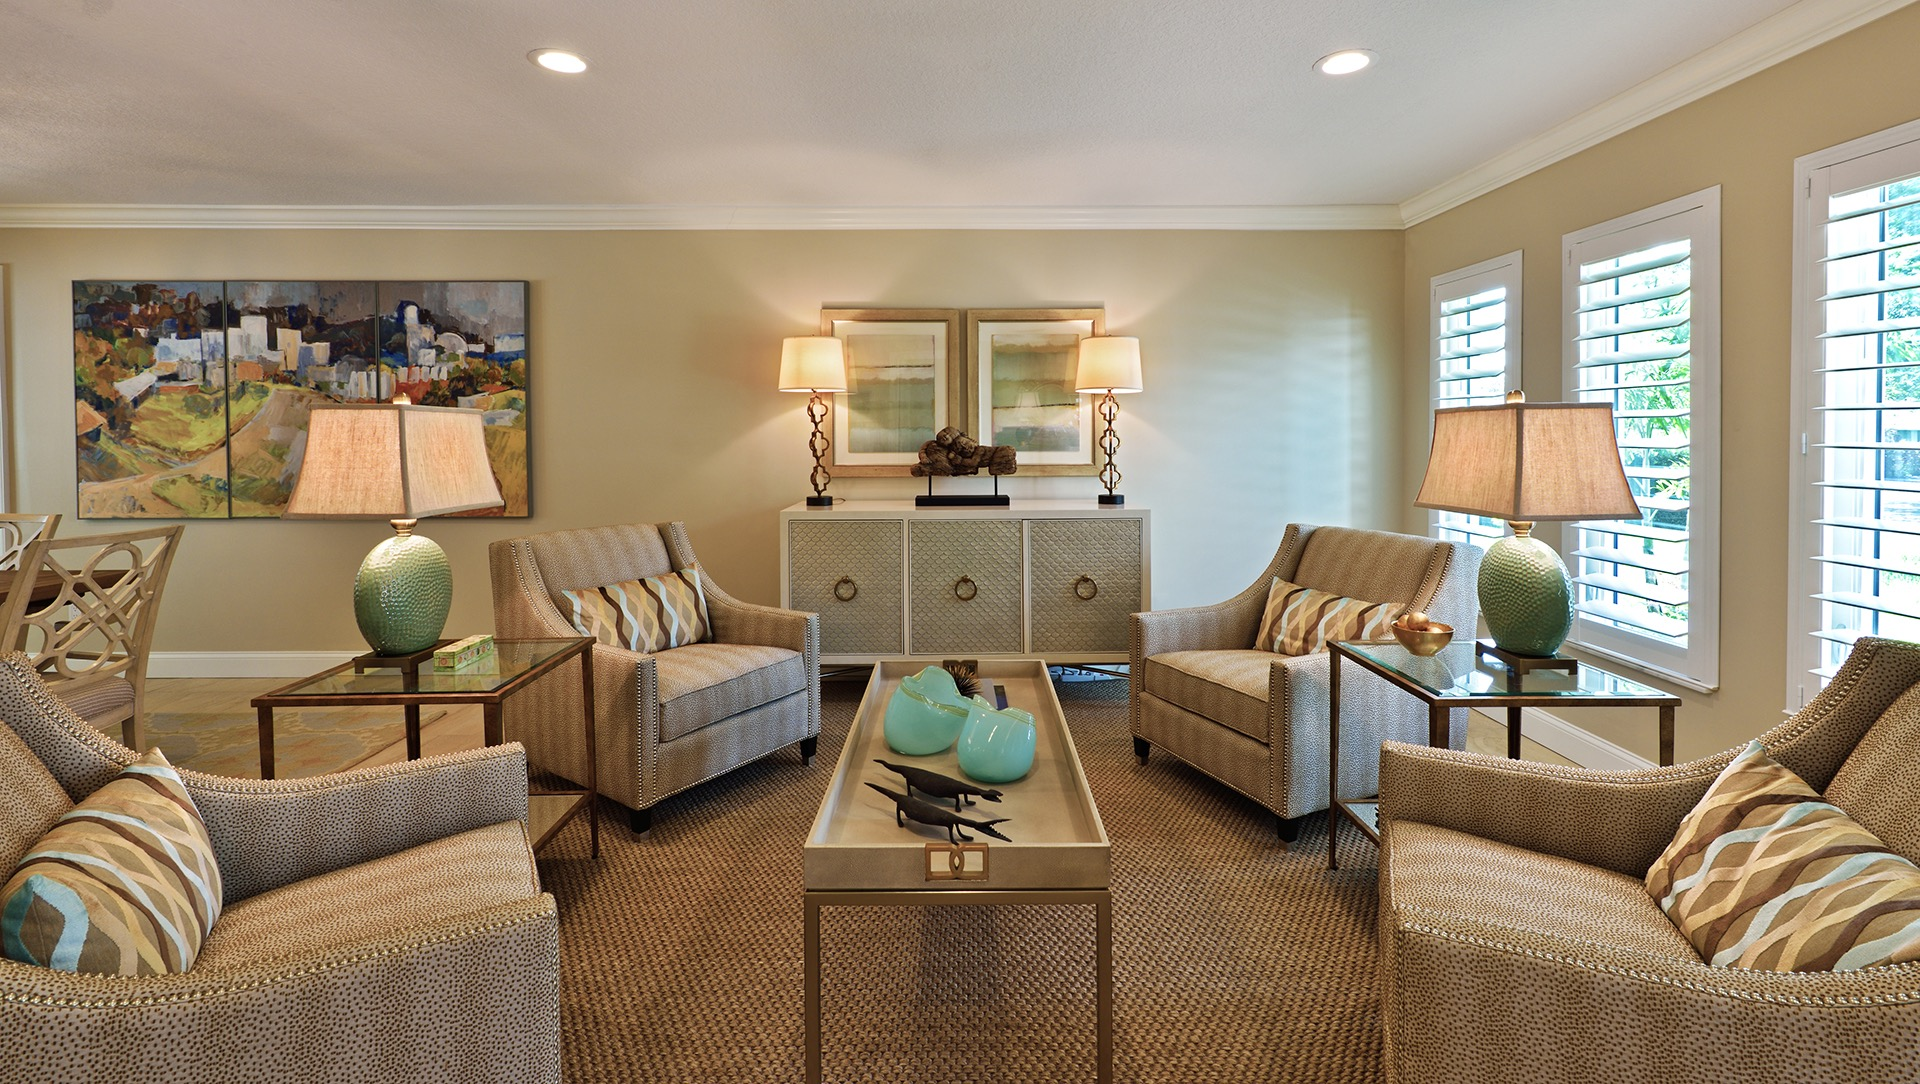 Tips For Creating A Comfortable And Cozy Living Room